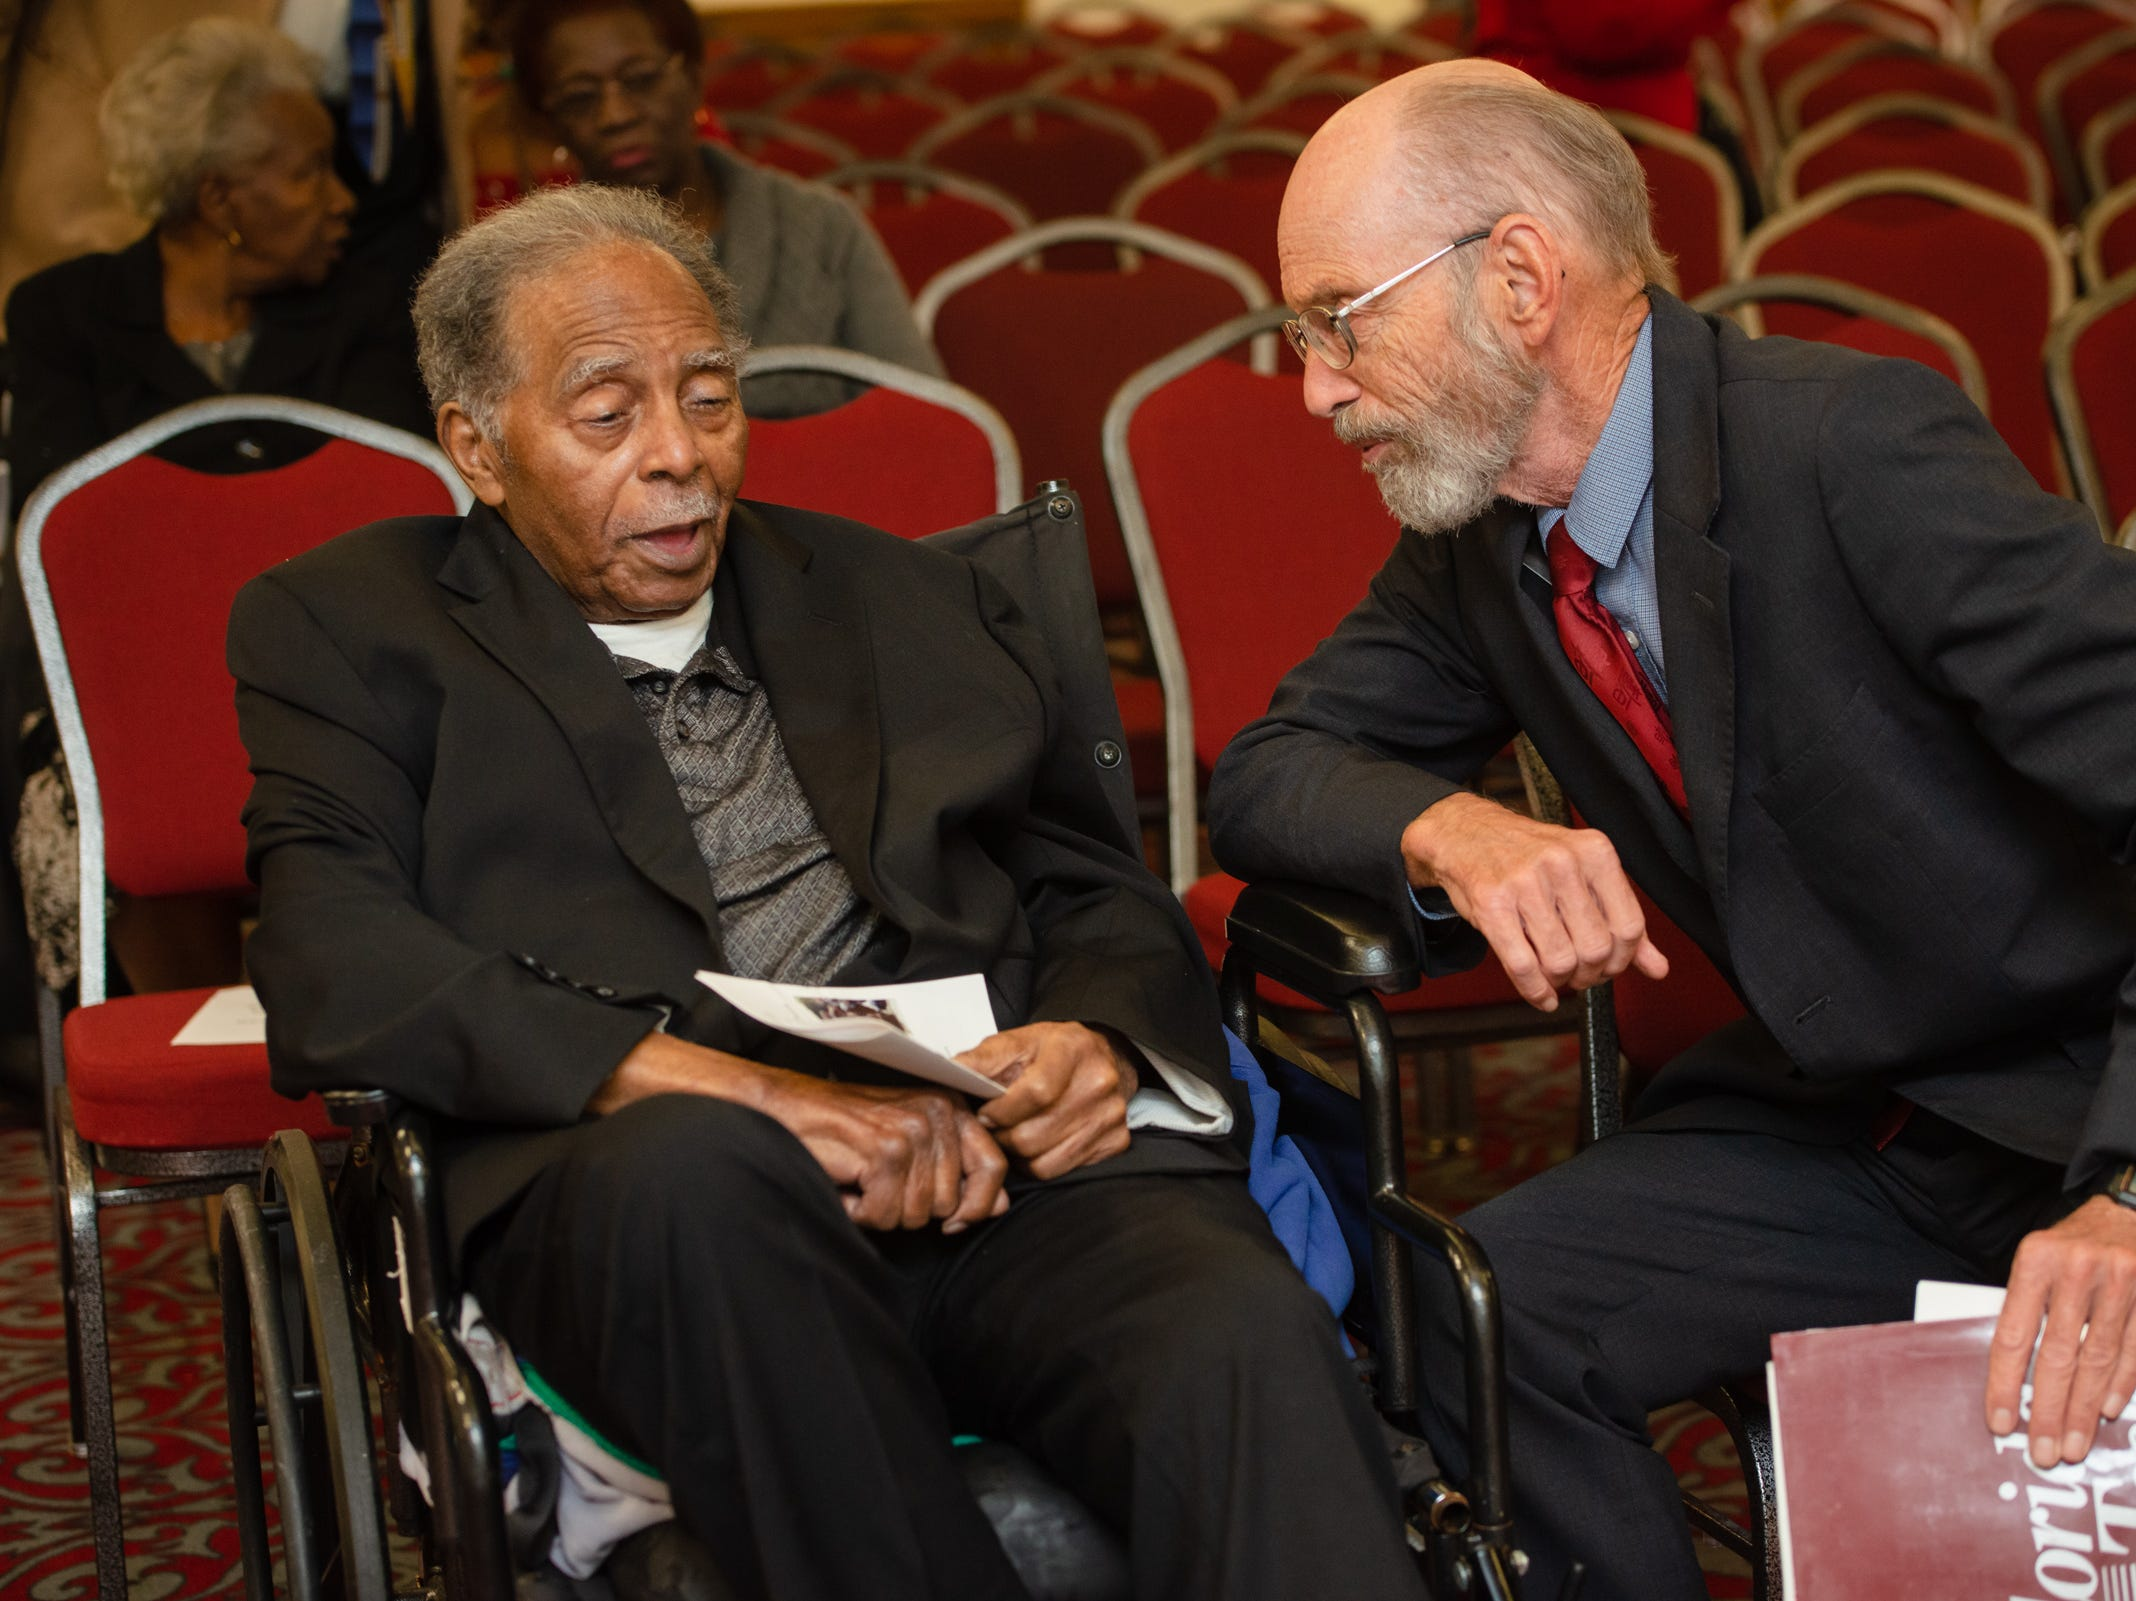 Julius Montgomery and Dr. Gordon Patterson visit together before the start of the Julius Montgomery Pioneer Award and the Dr. Harvey L. Riley Bridge Builder Award presentation in celebration of Martin Luther King Jr. Day.